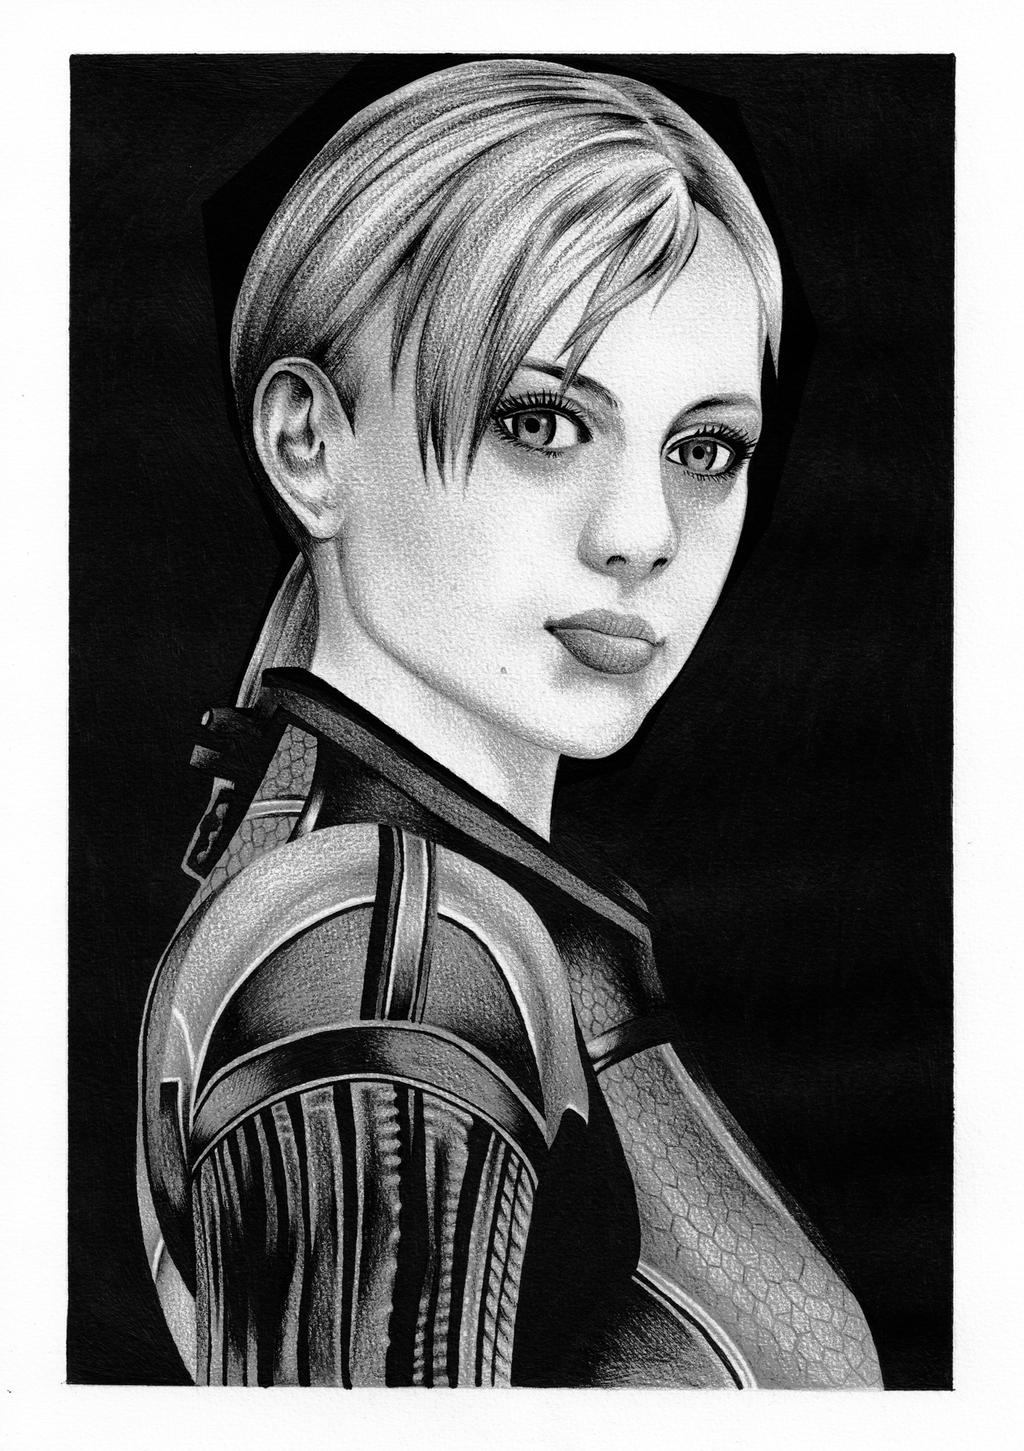 resident evil 5 jill valentine coloring pages | Jill Valentine Battle Suit by tyller16 on DeviantArt